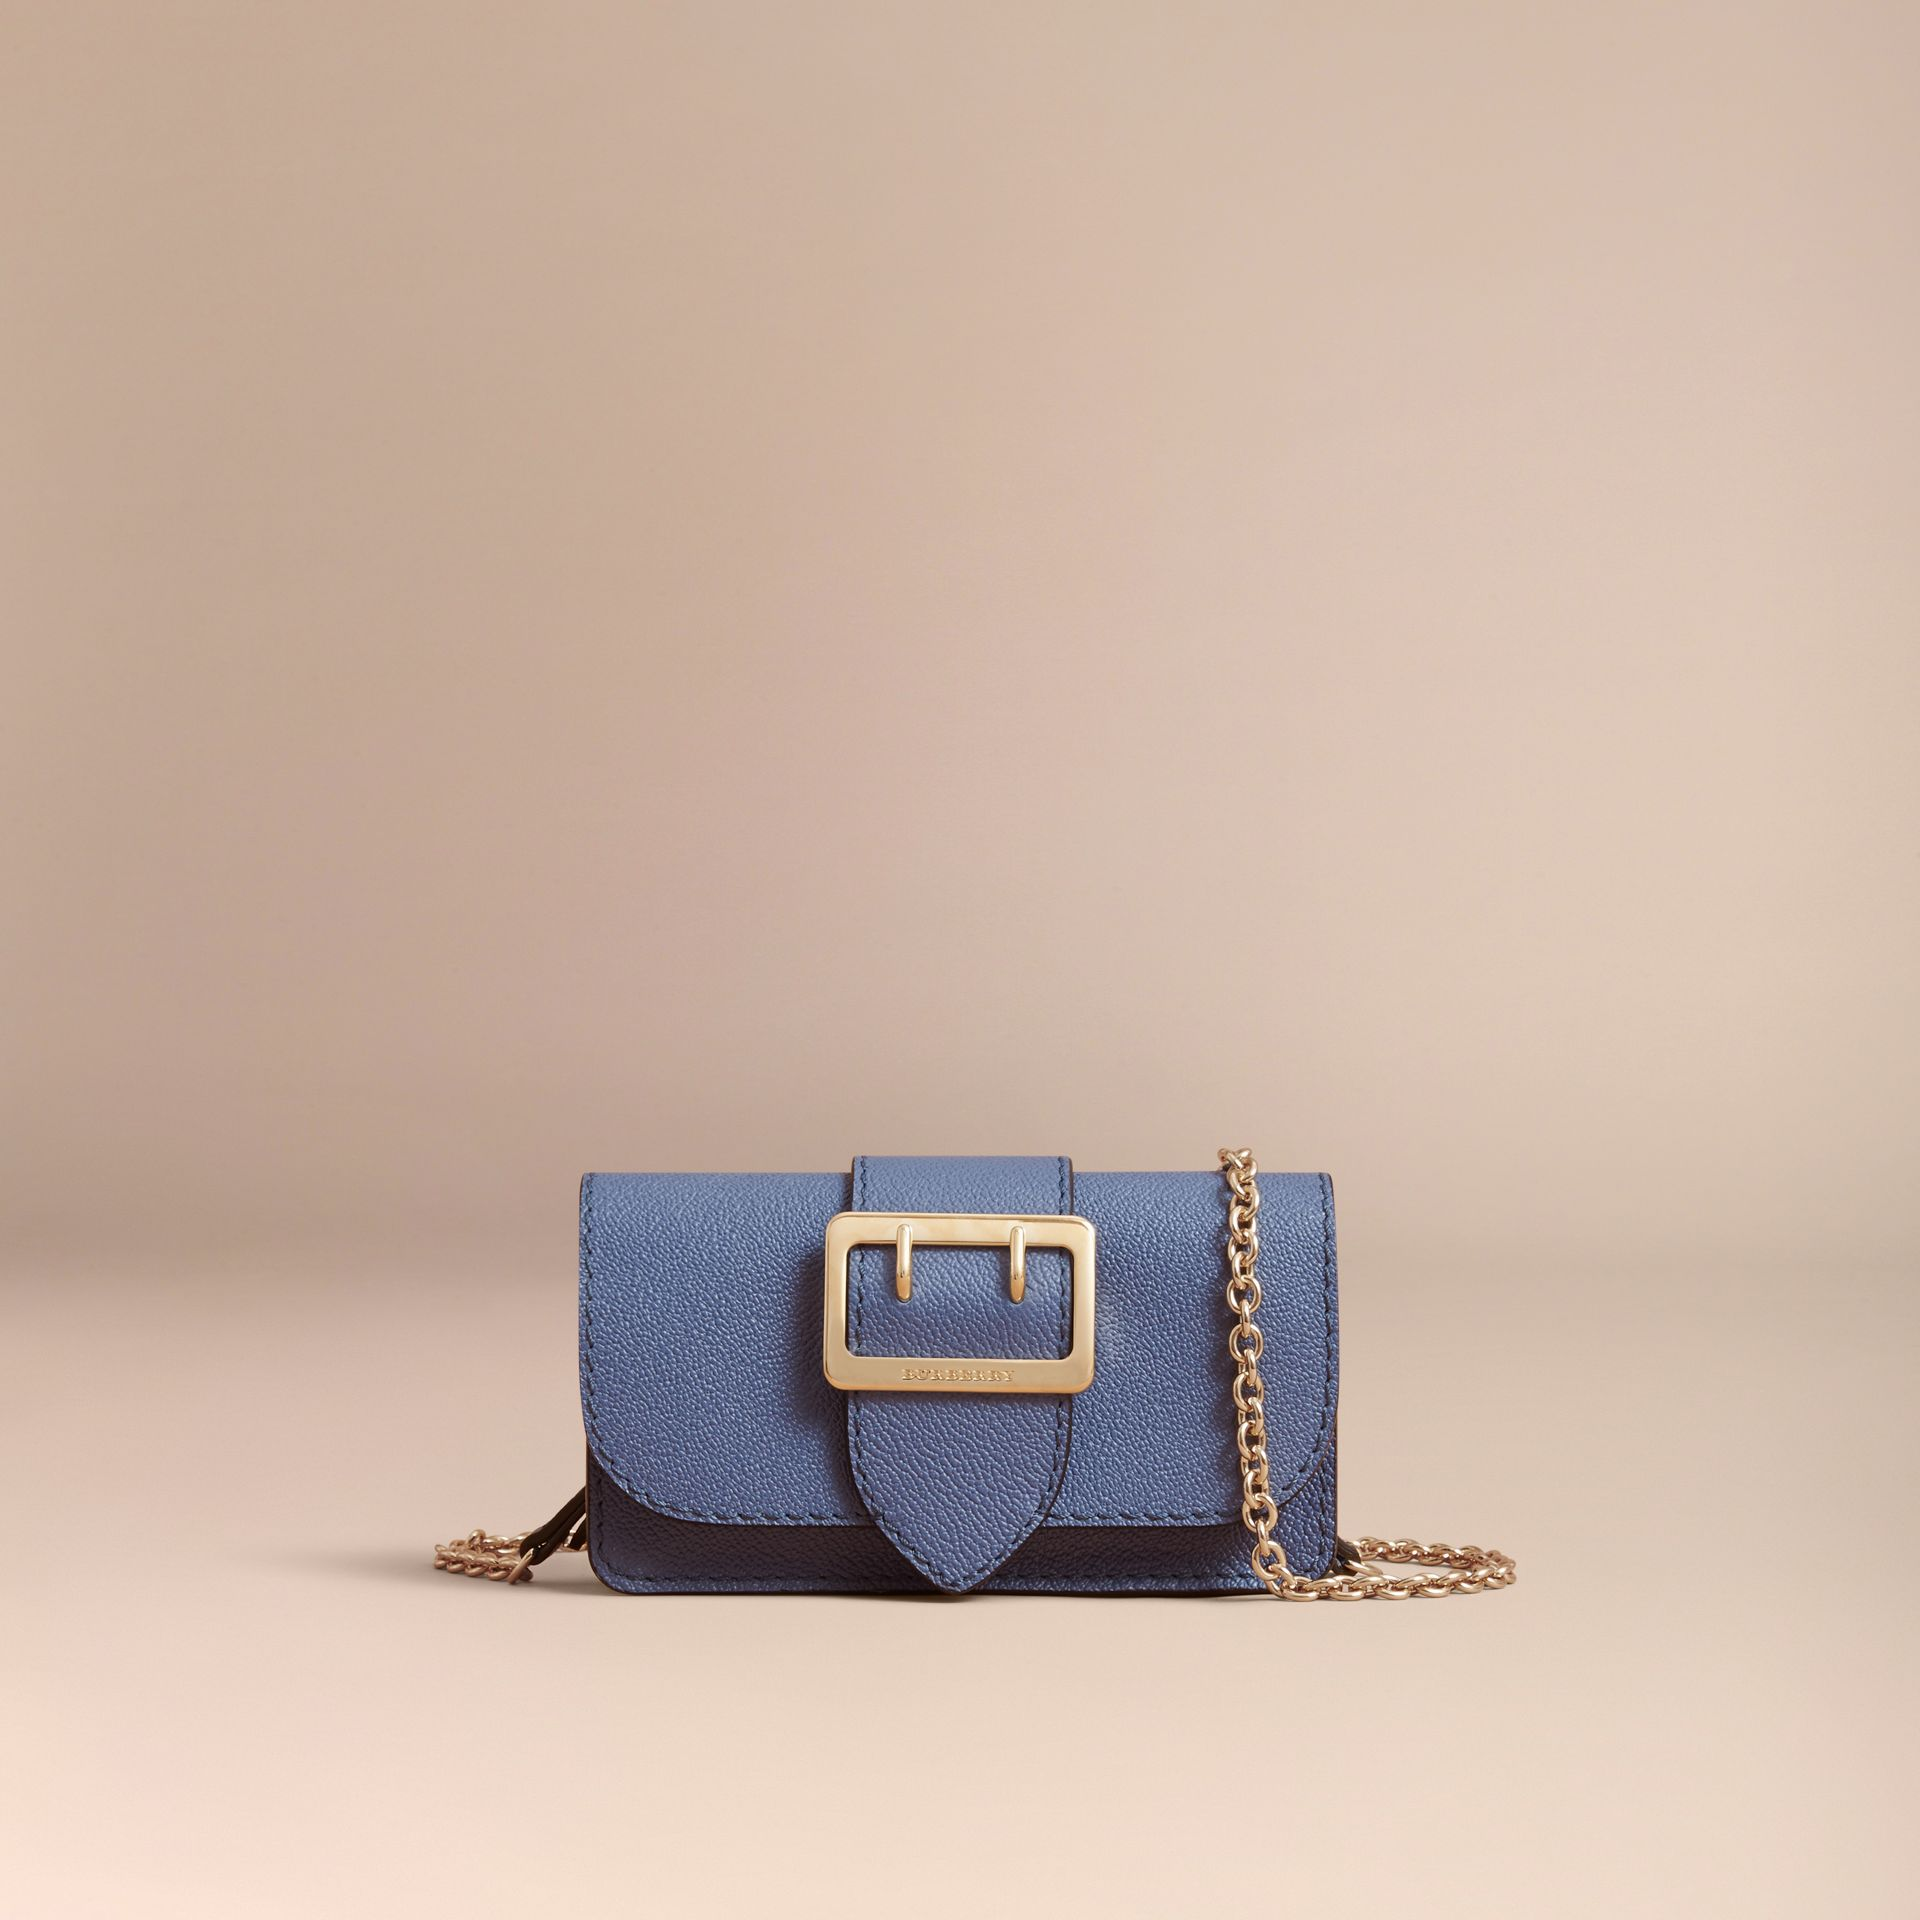 The Mini Buckle Bag in Grainy Leather in Steel Blue - Women | Burberry Hong Kong - gallery image 5